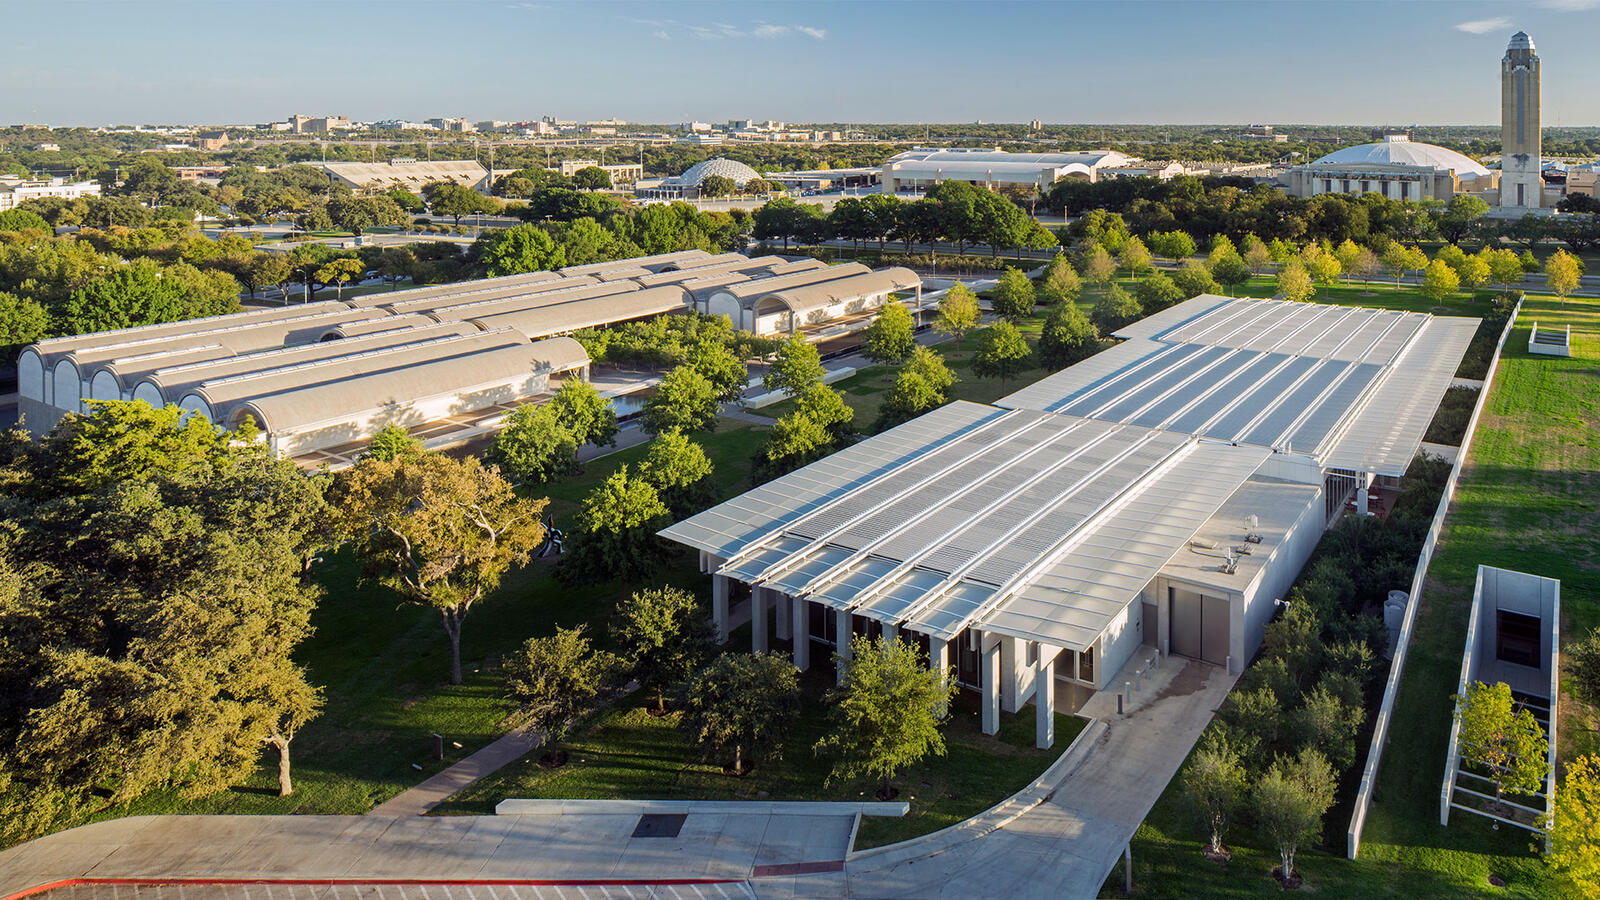 Aerial view of the Kimbell Art Museum campus, photograph by Nic Lehoux